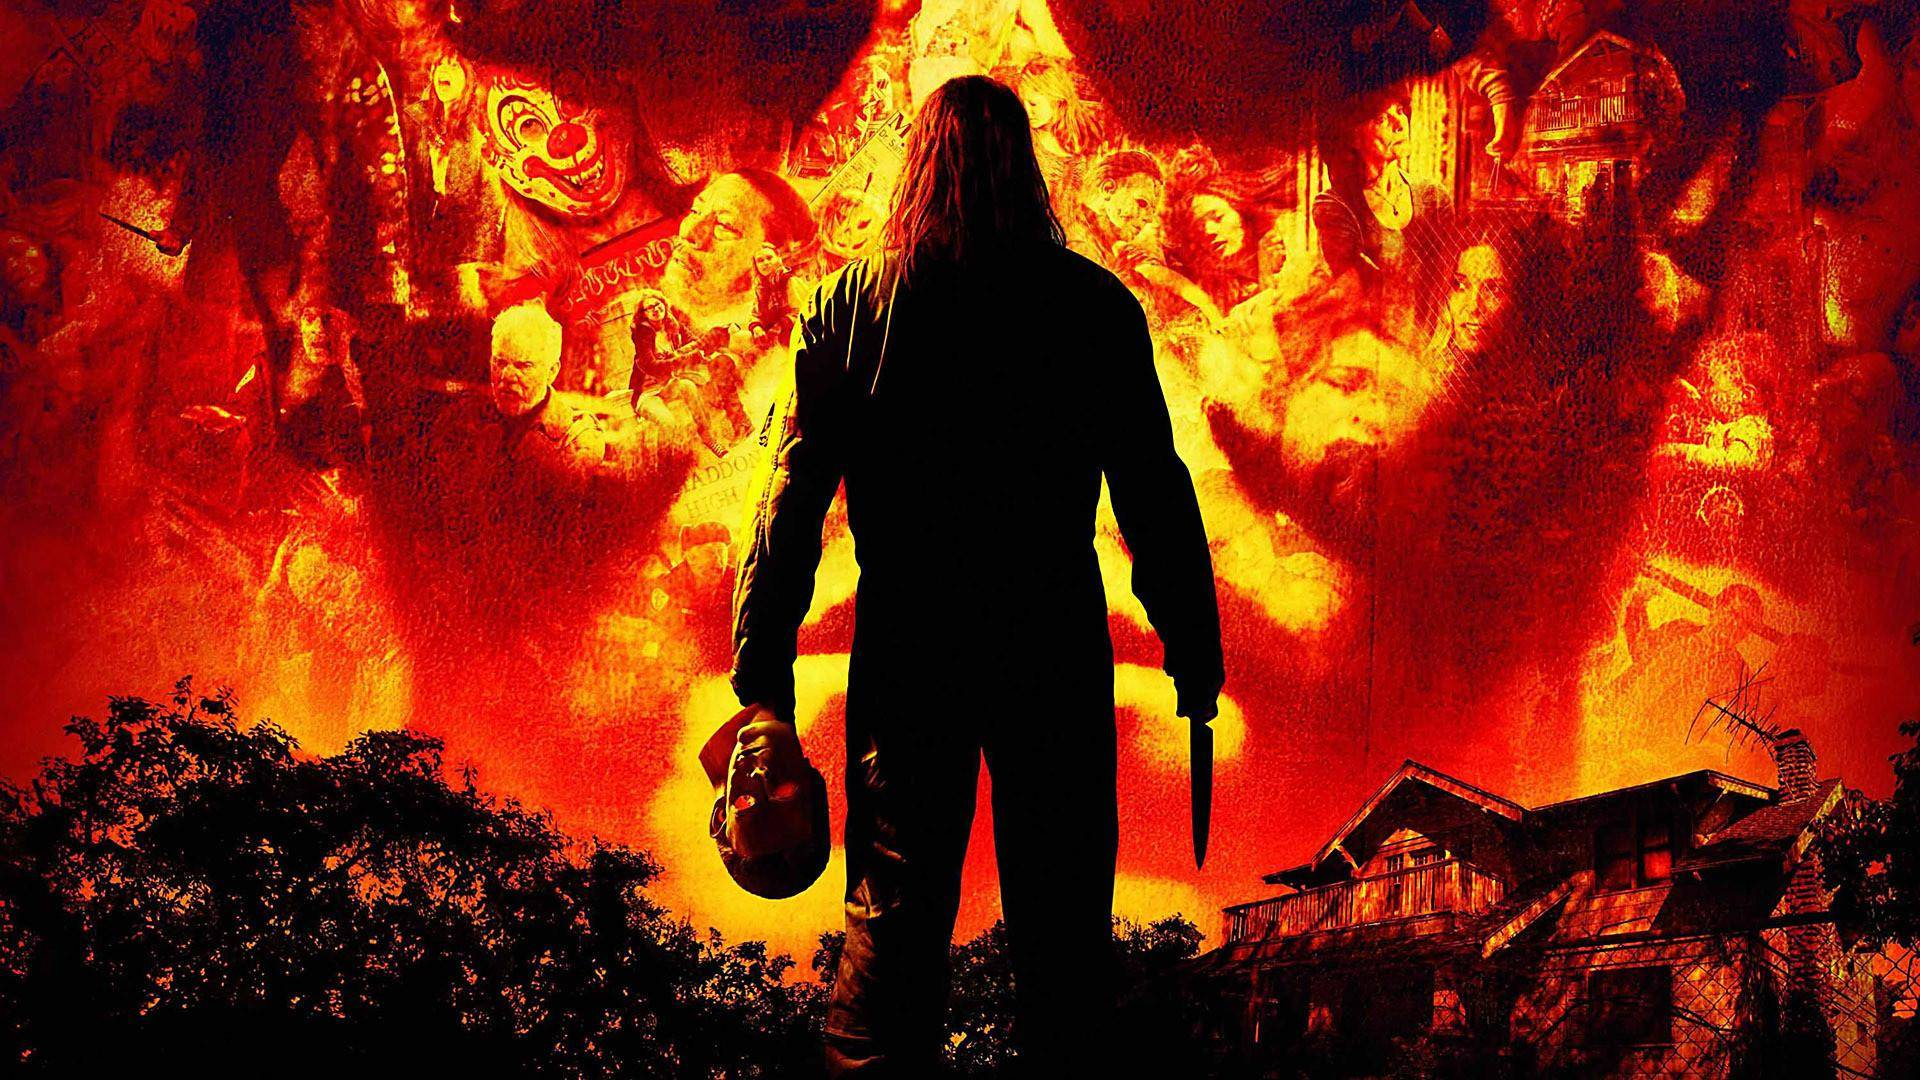 Hd wallpaper zombie - Rob Zombie Halloween 2 Wallpapers